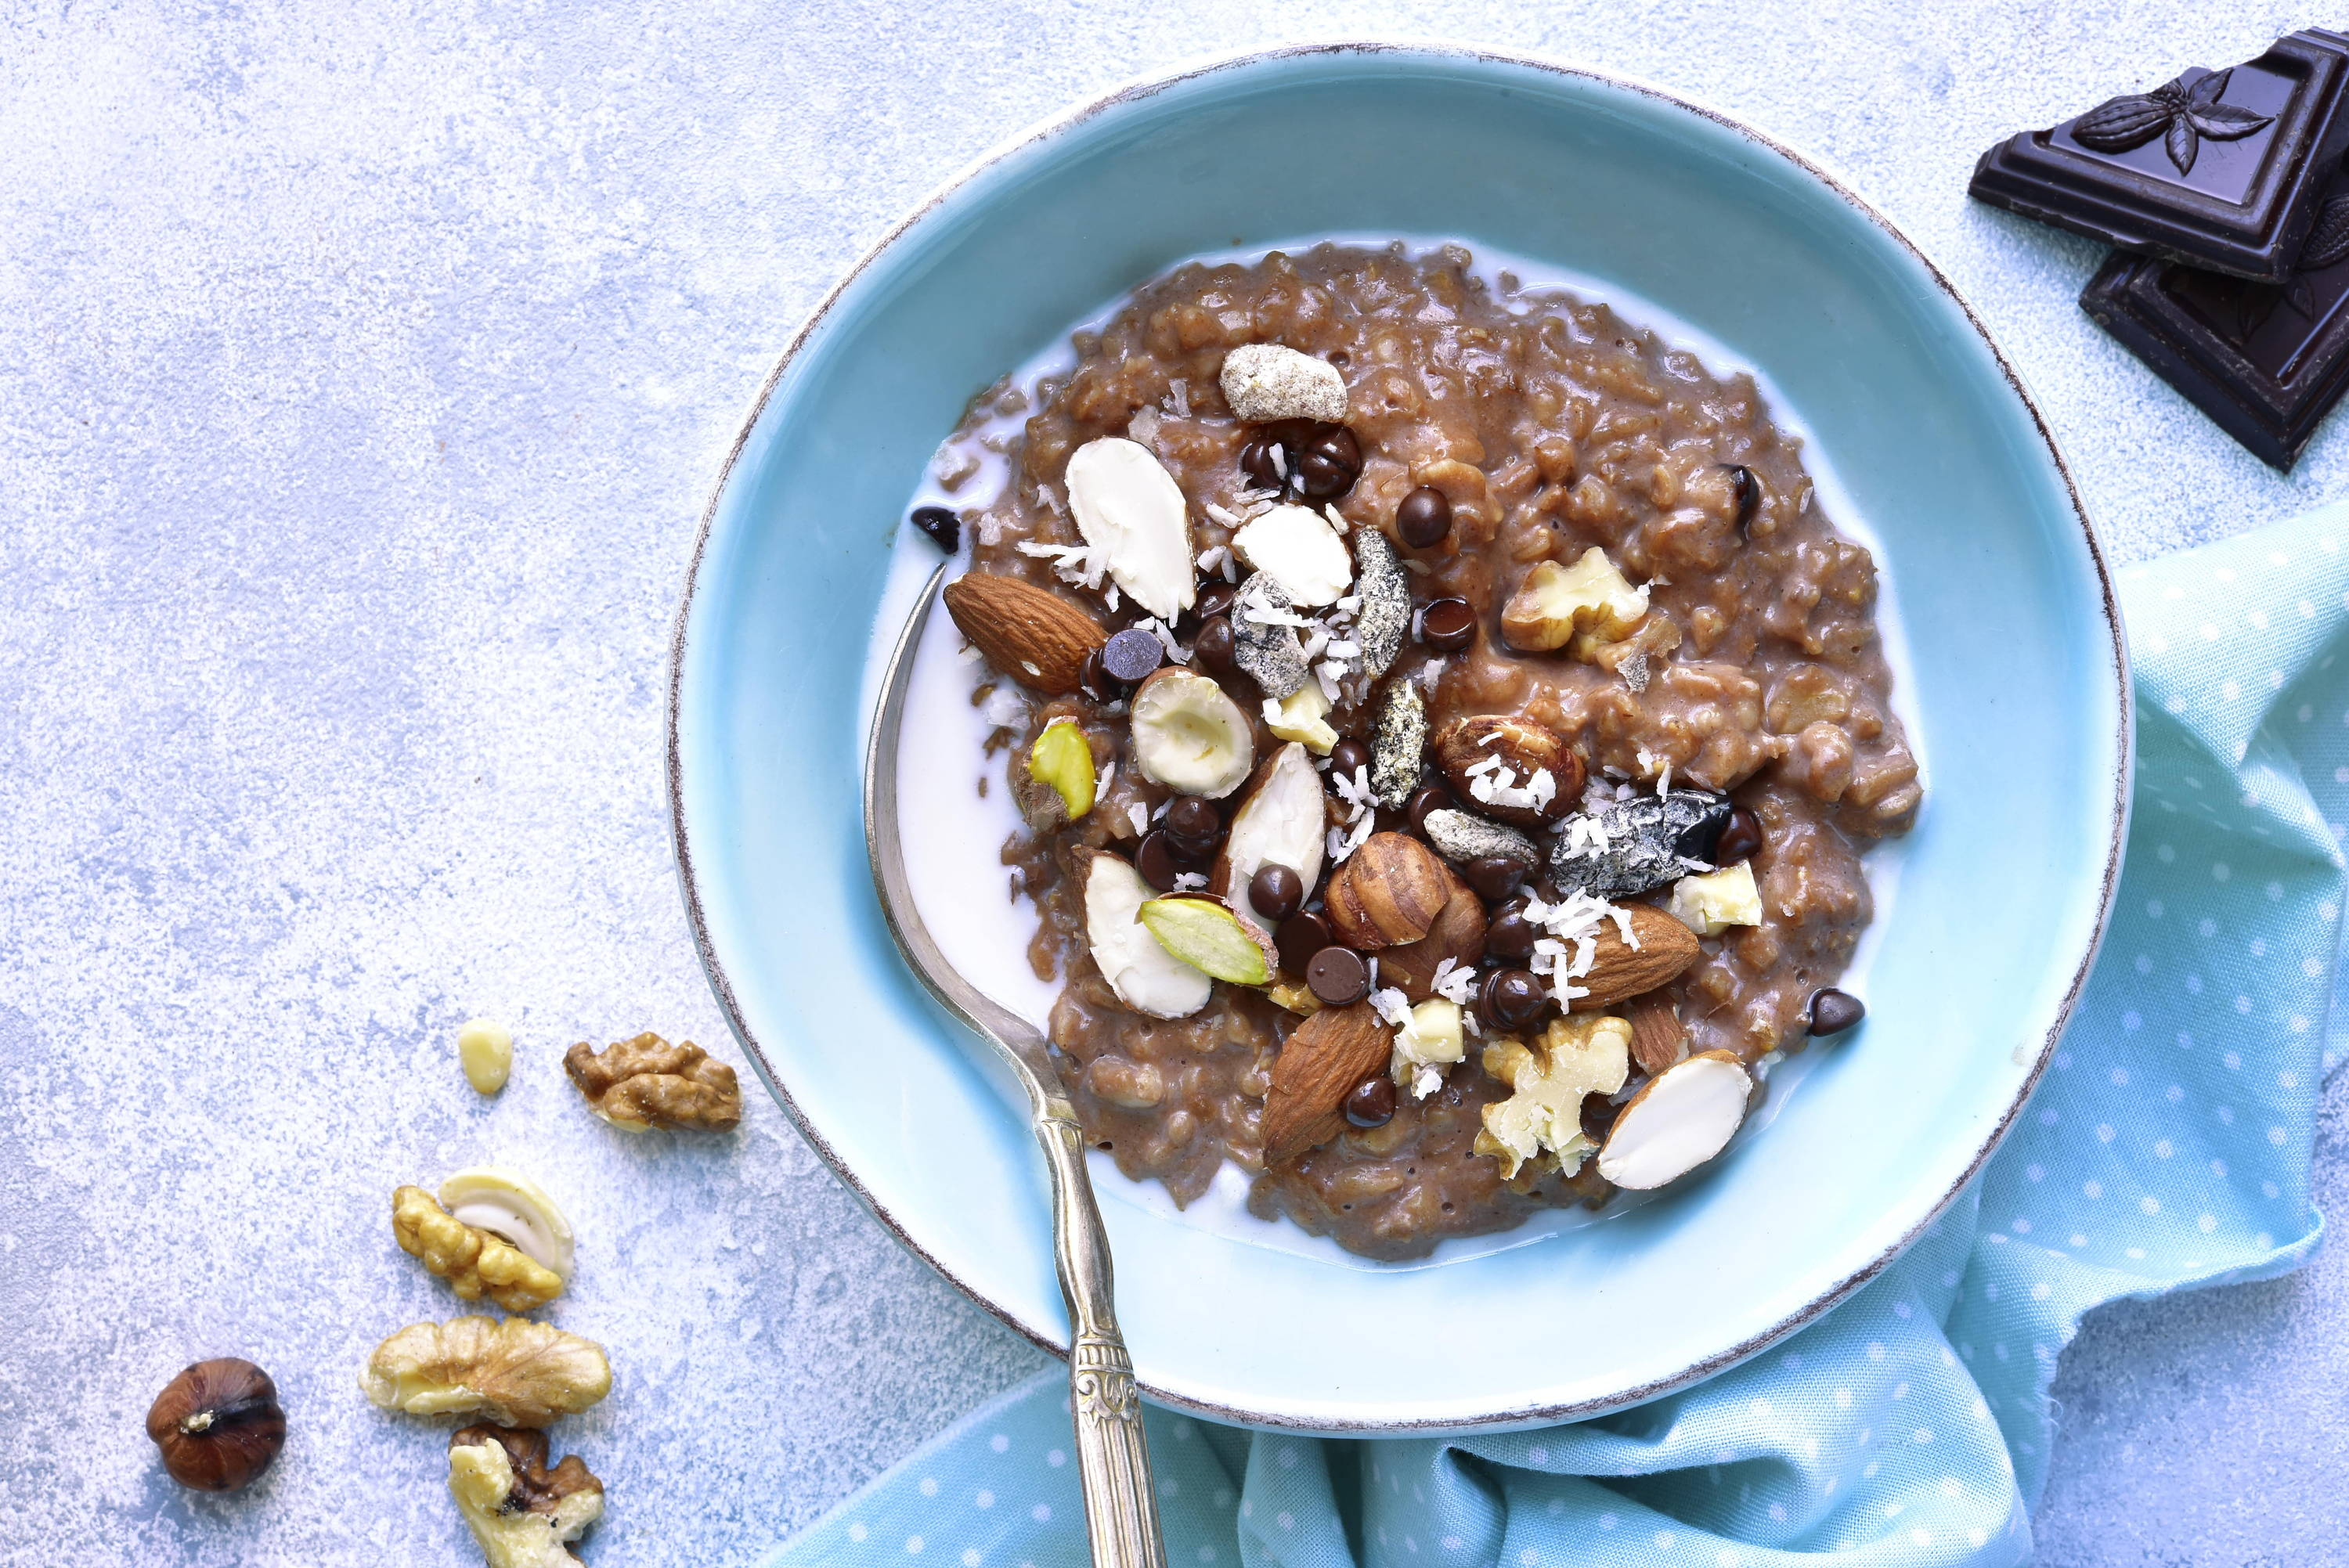 Vegan chocolate overnight oats with almonds and hazelnuts in a blue bowl